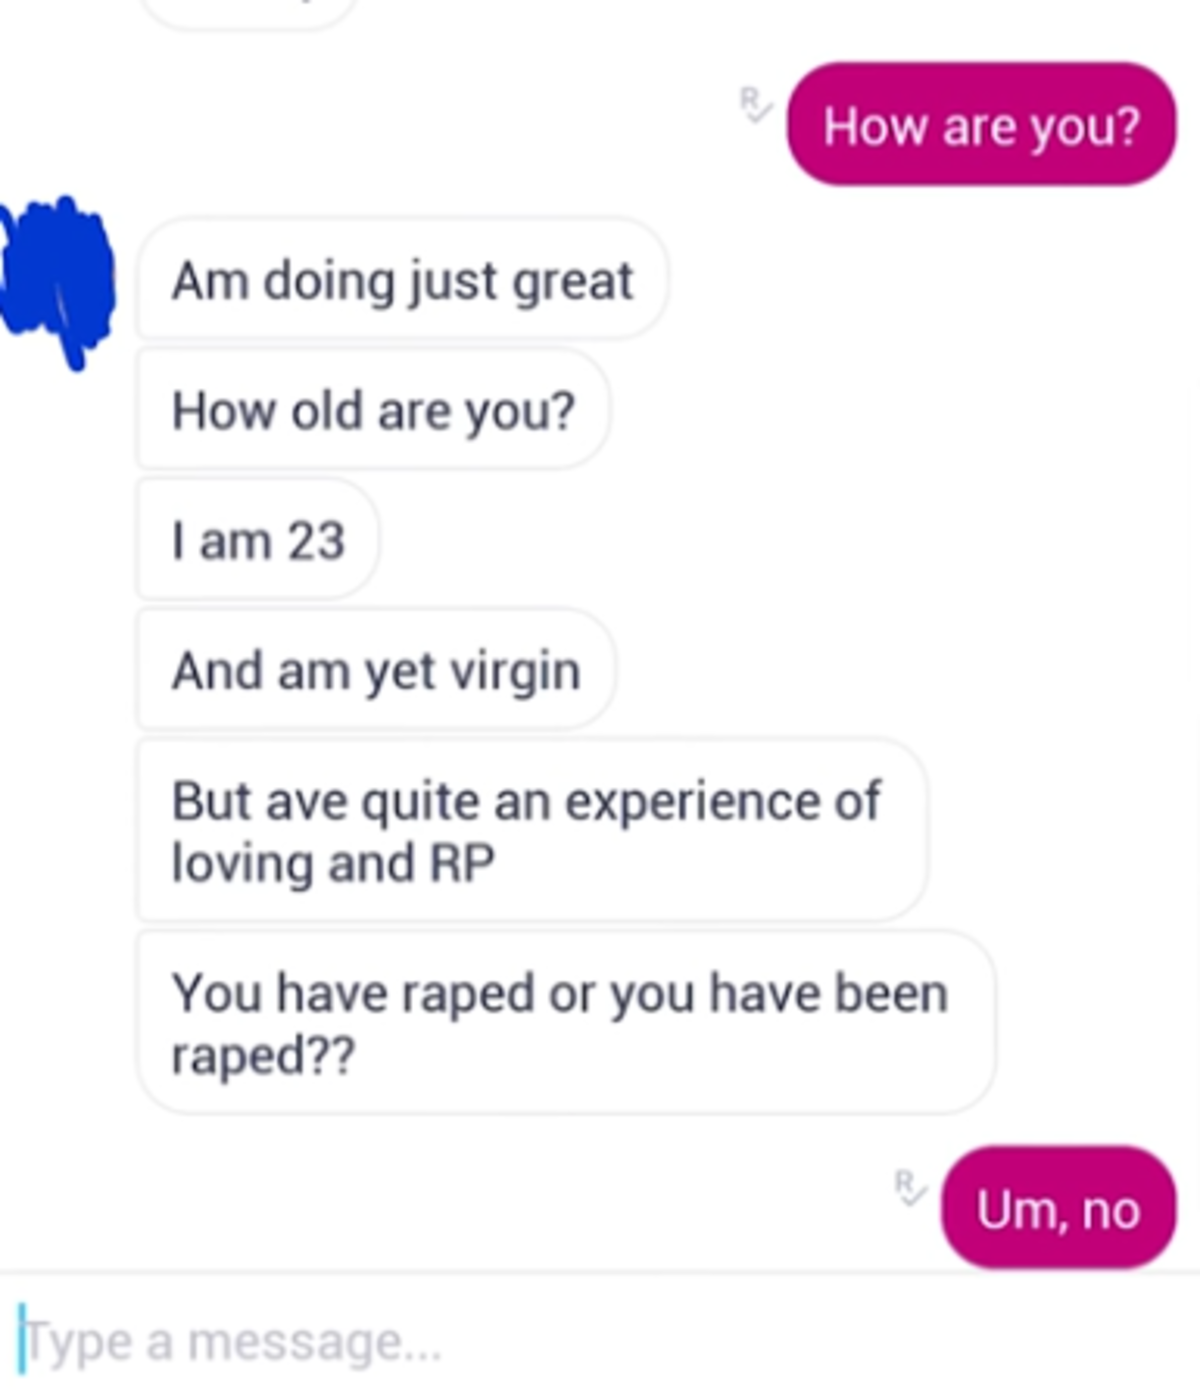 demonic hurried lazy Caterpillar. .. Not weird that you are a virgin if you start a conversation about how you'd like to adding roleplay under doubt rape them